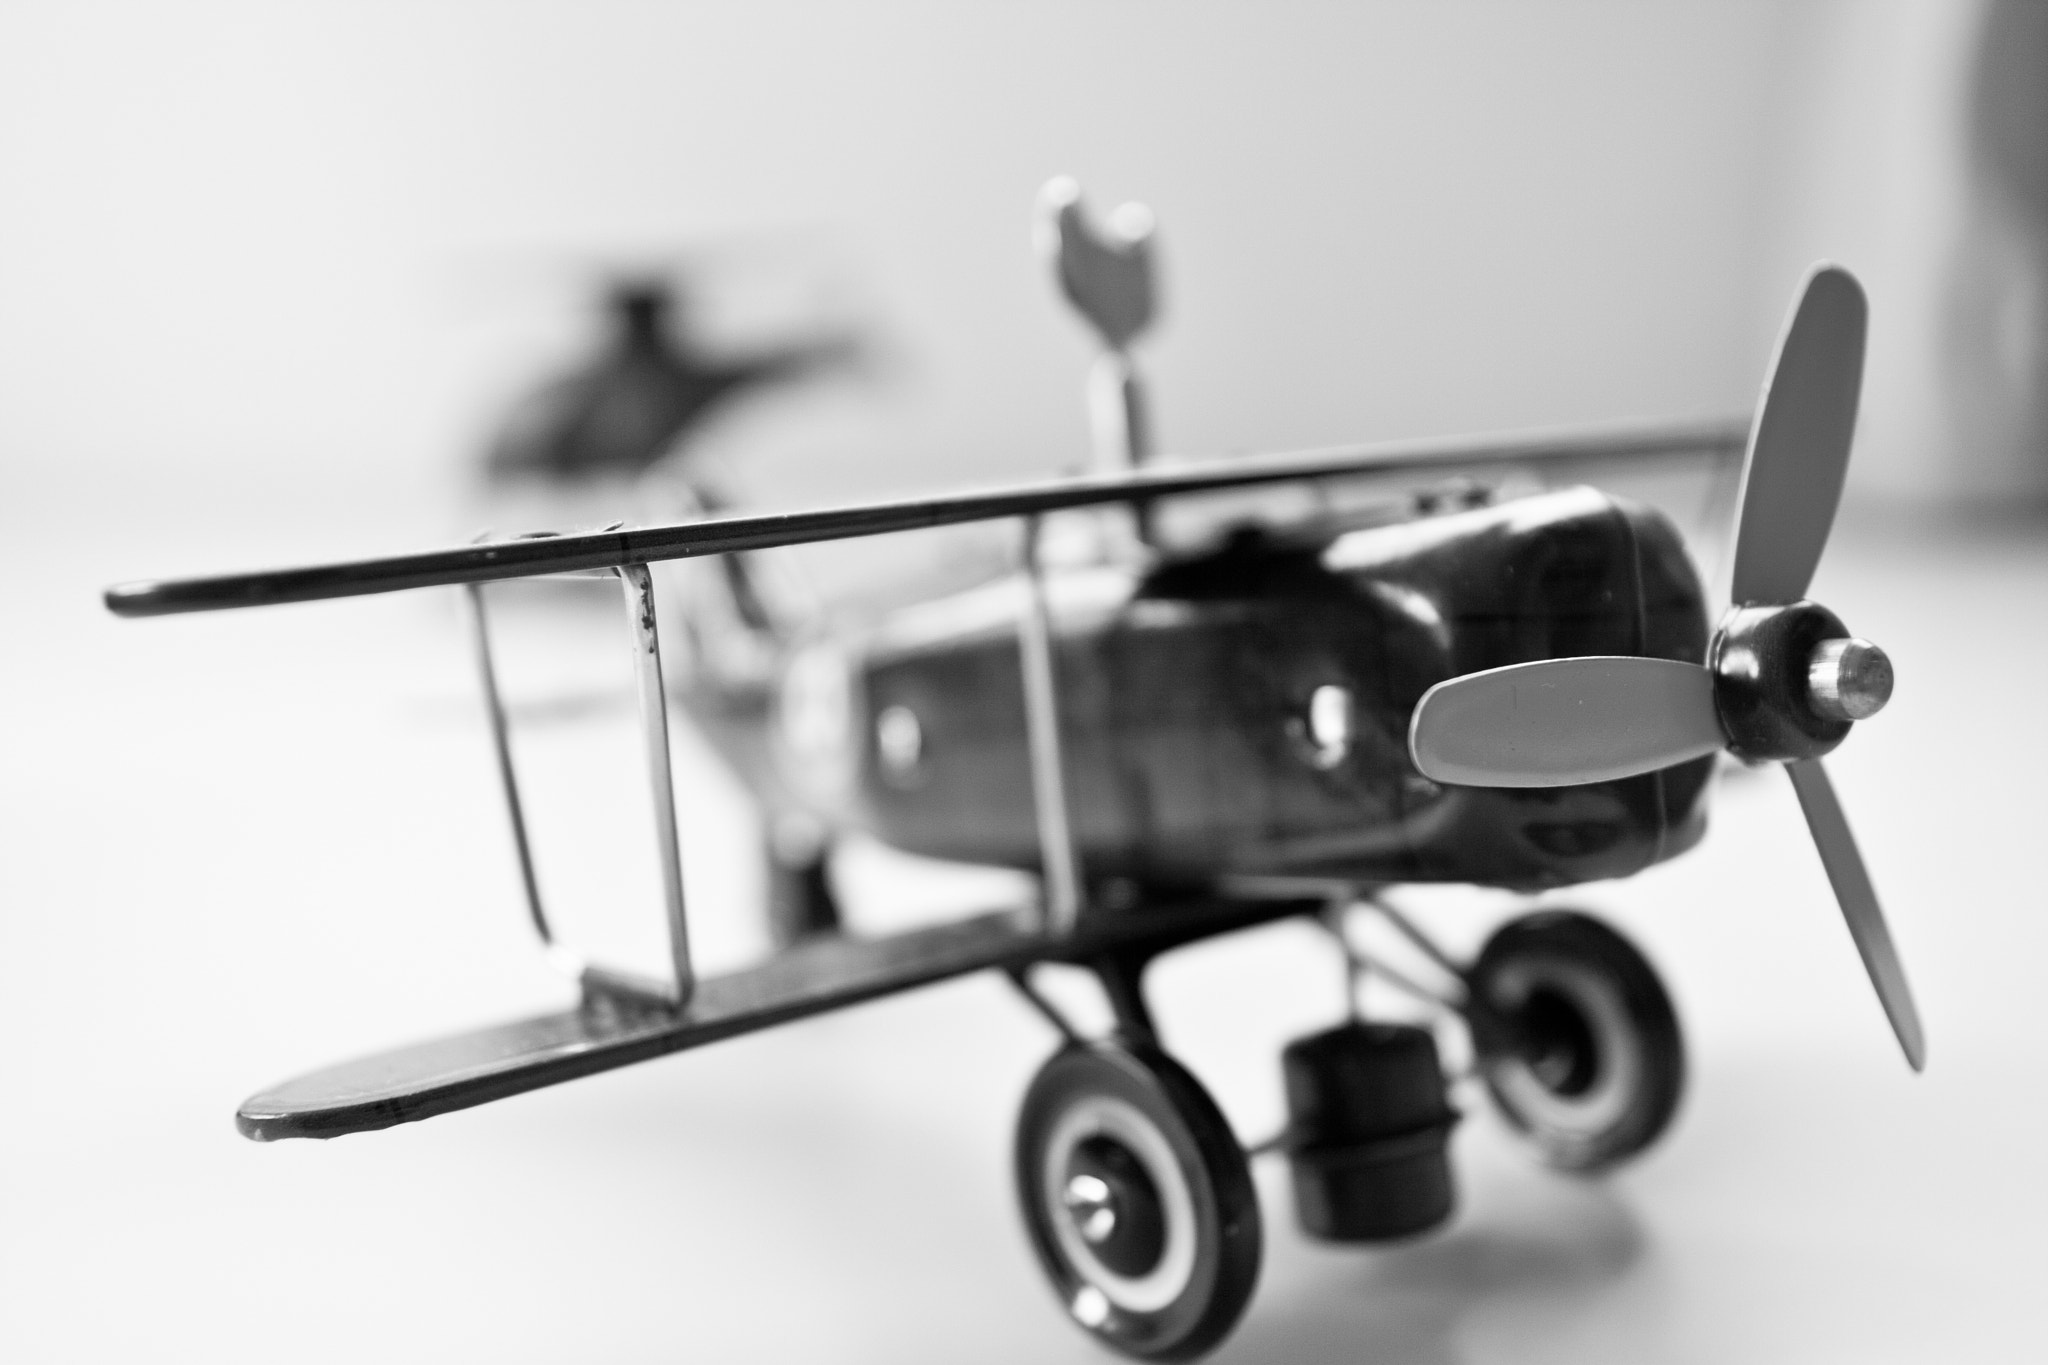 Photograph Toy metal plane by Miguel Aparicio on 500px